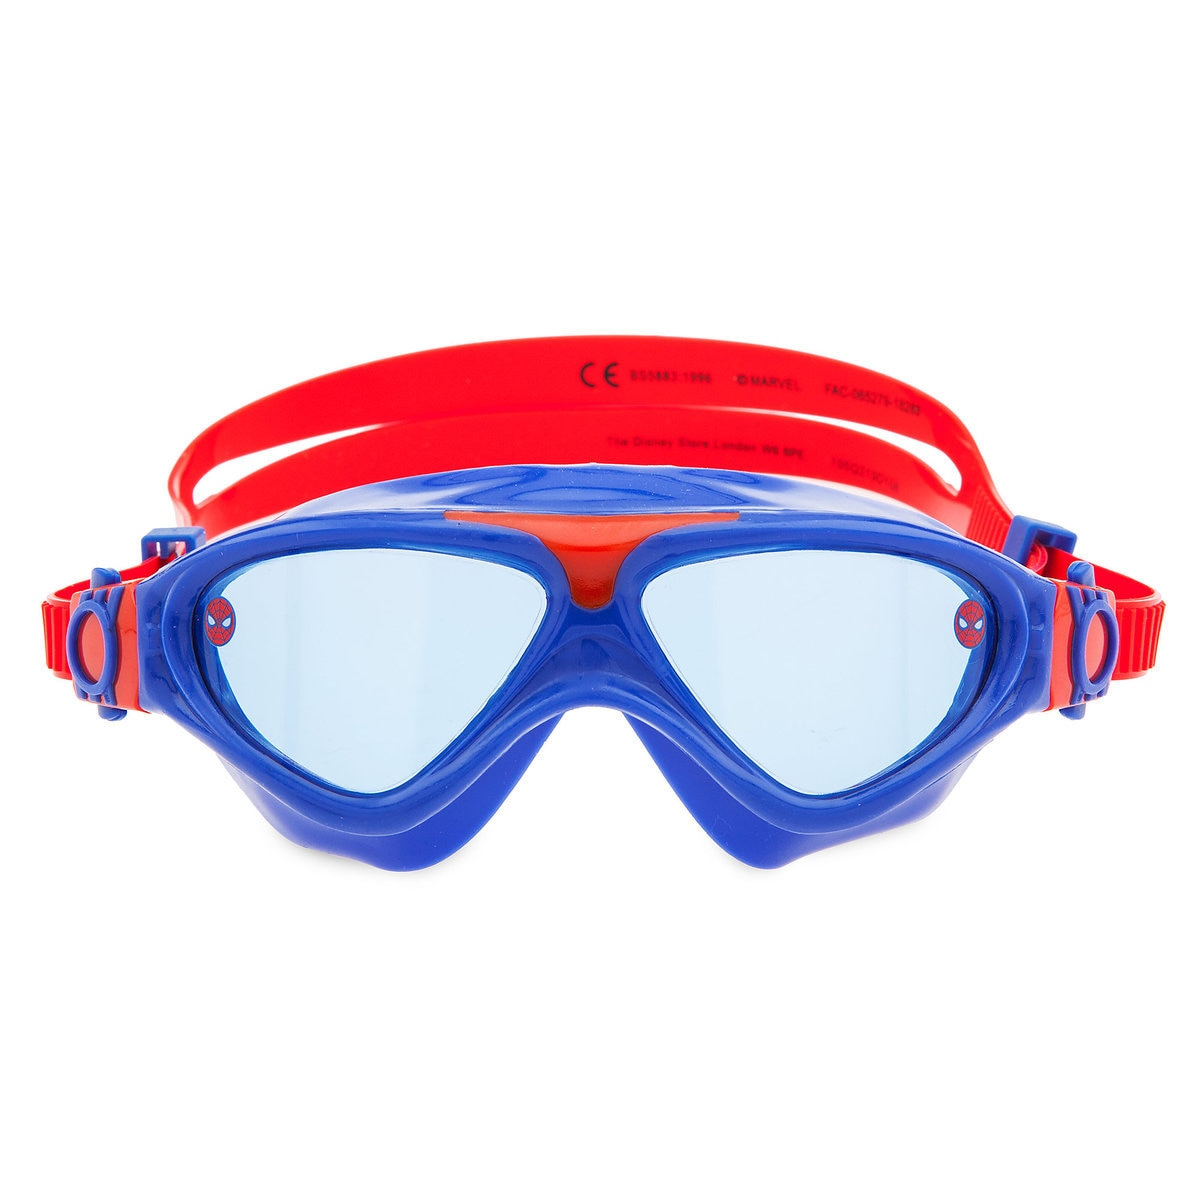 f567d6e6146 Product Image of Spider-Man Swim Goggles for Kids   1